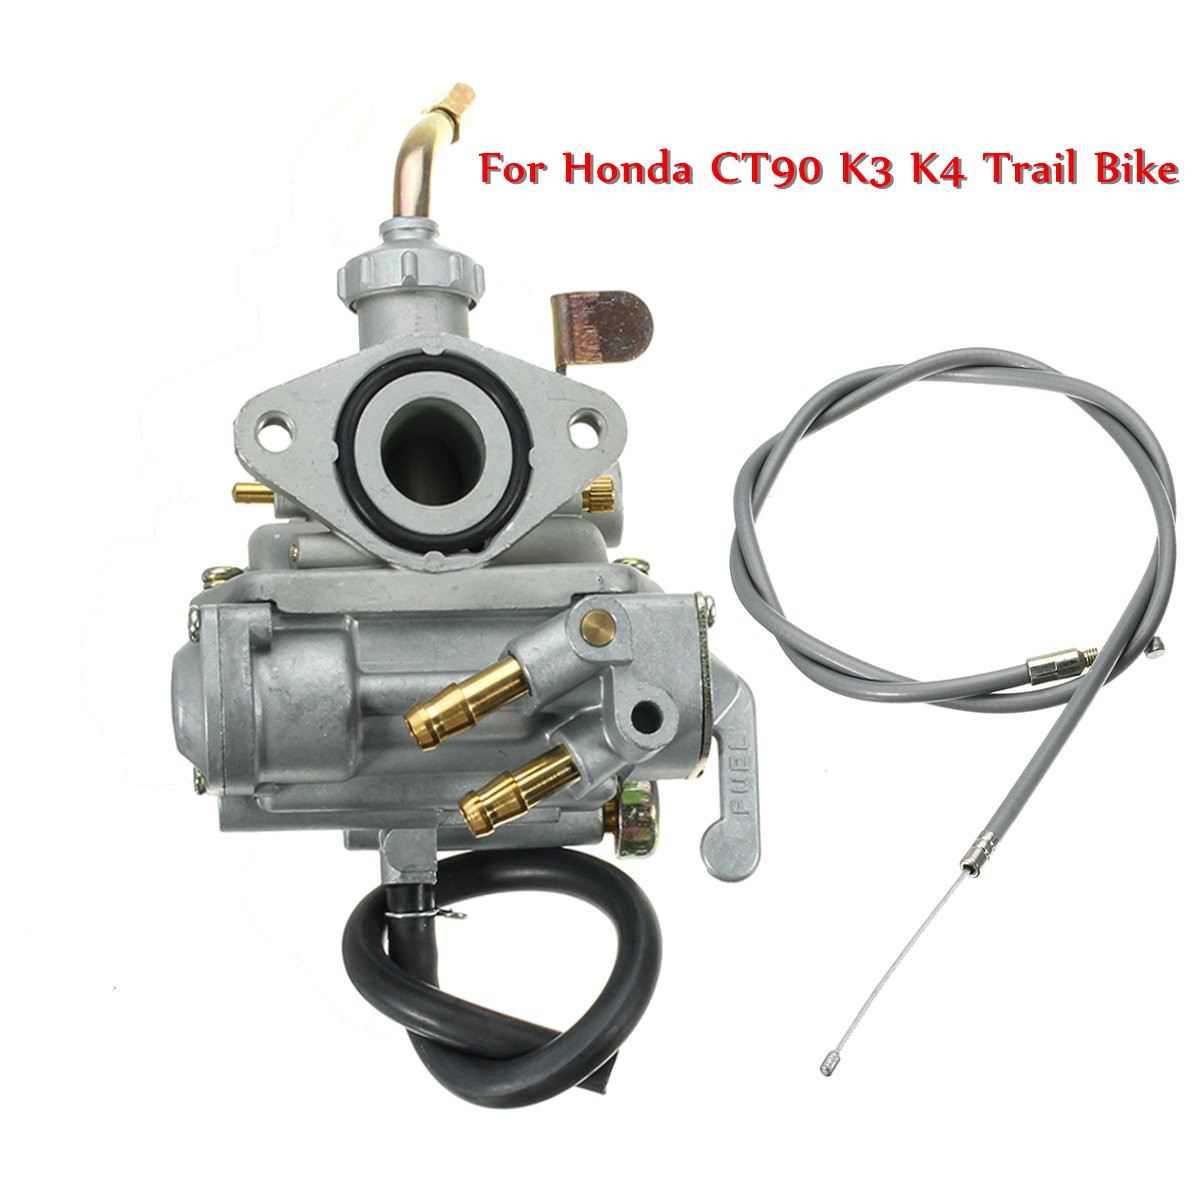 1 set carburetor throttle cable c02139 for honda ct90 k3 k4 trail bike engine new [ 1200 x 1200 Pixel ]